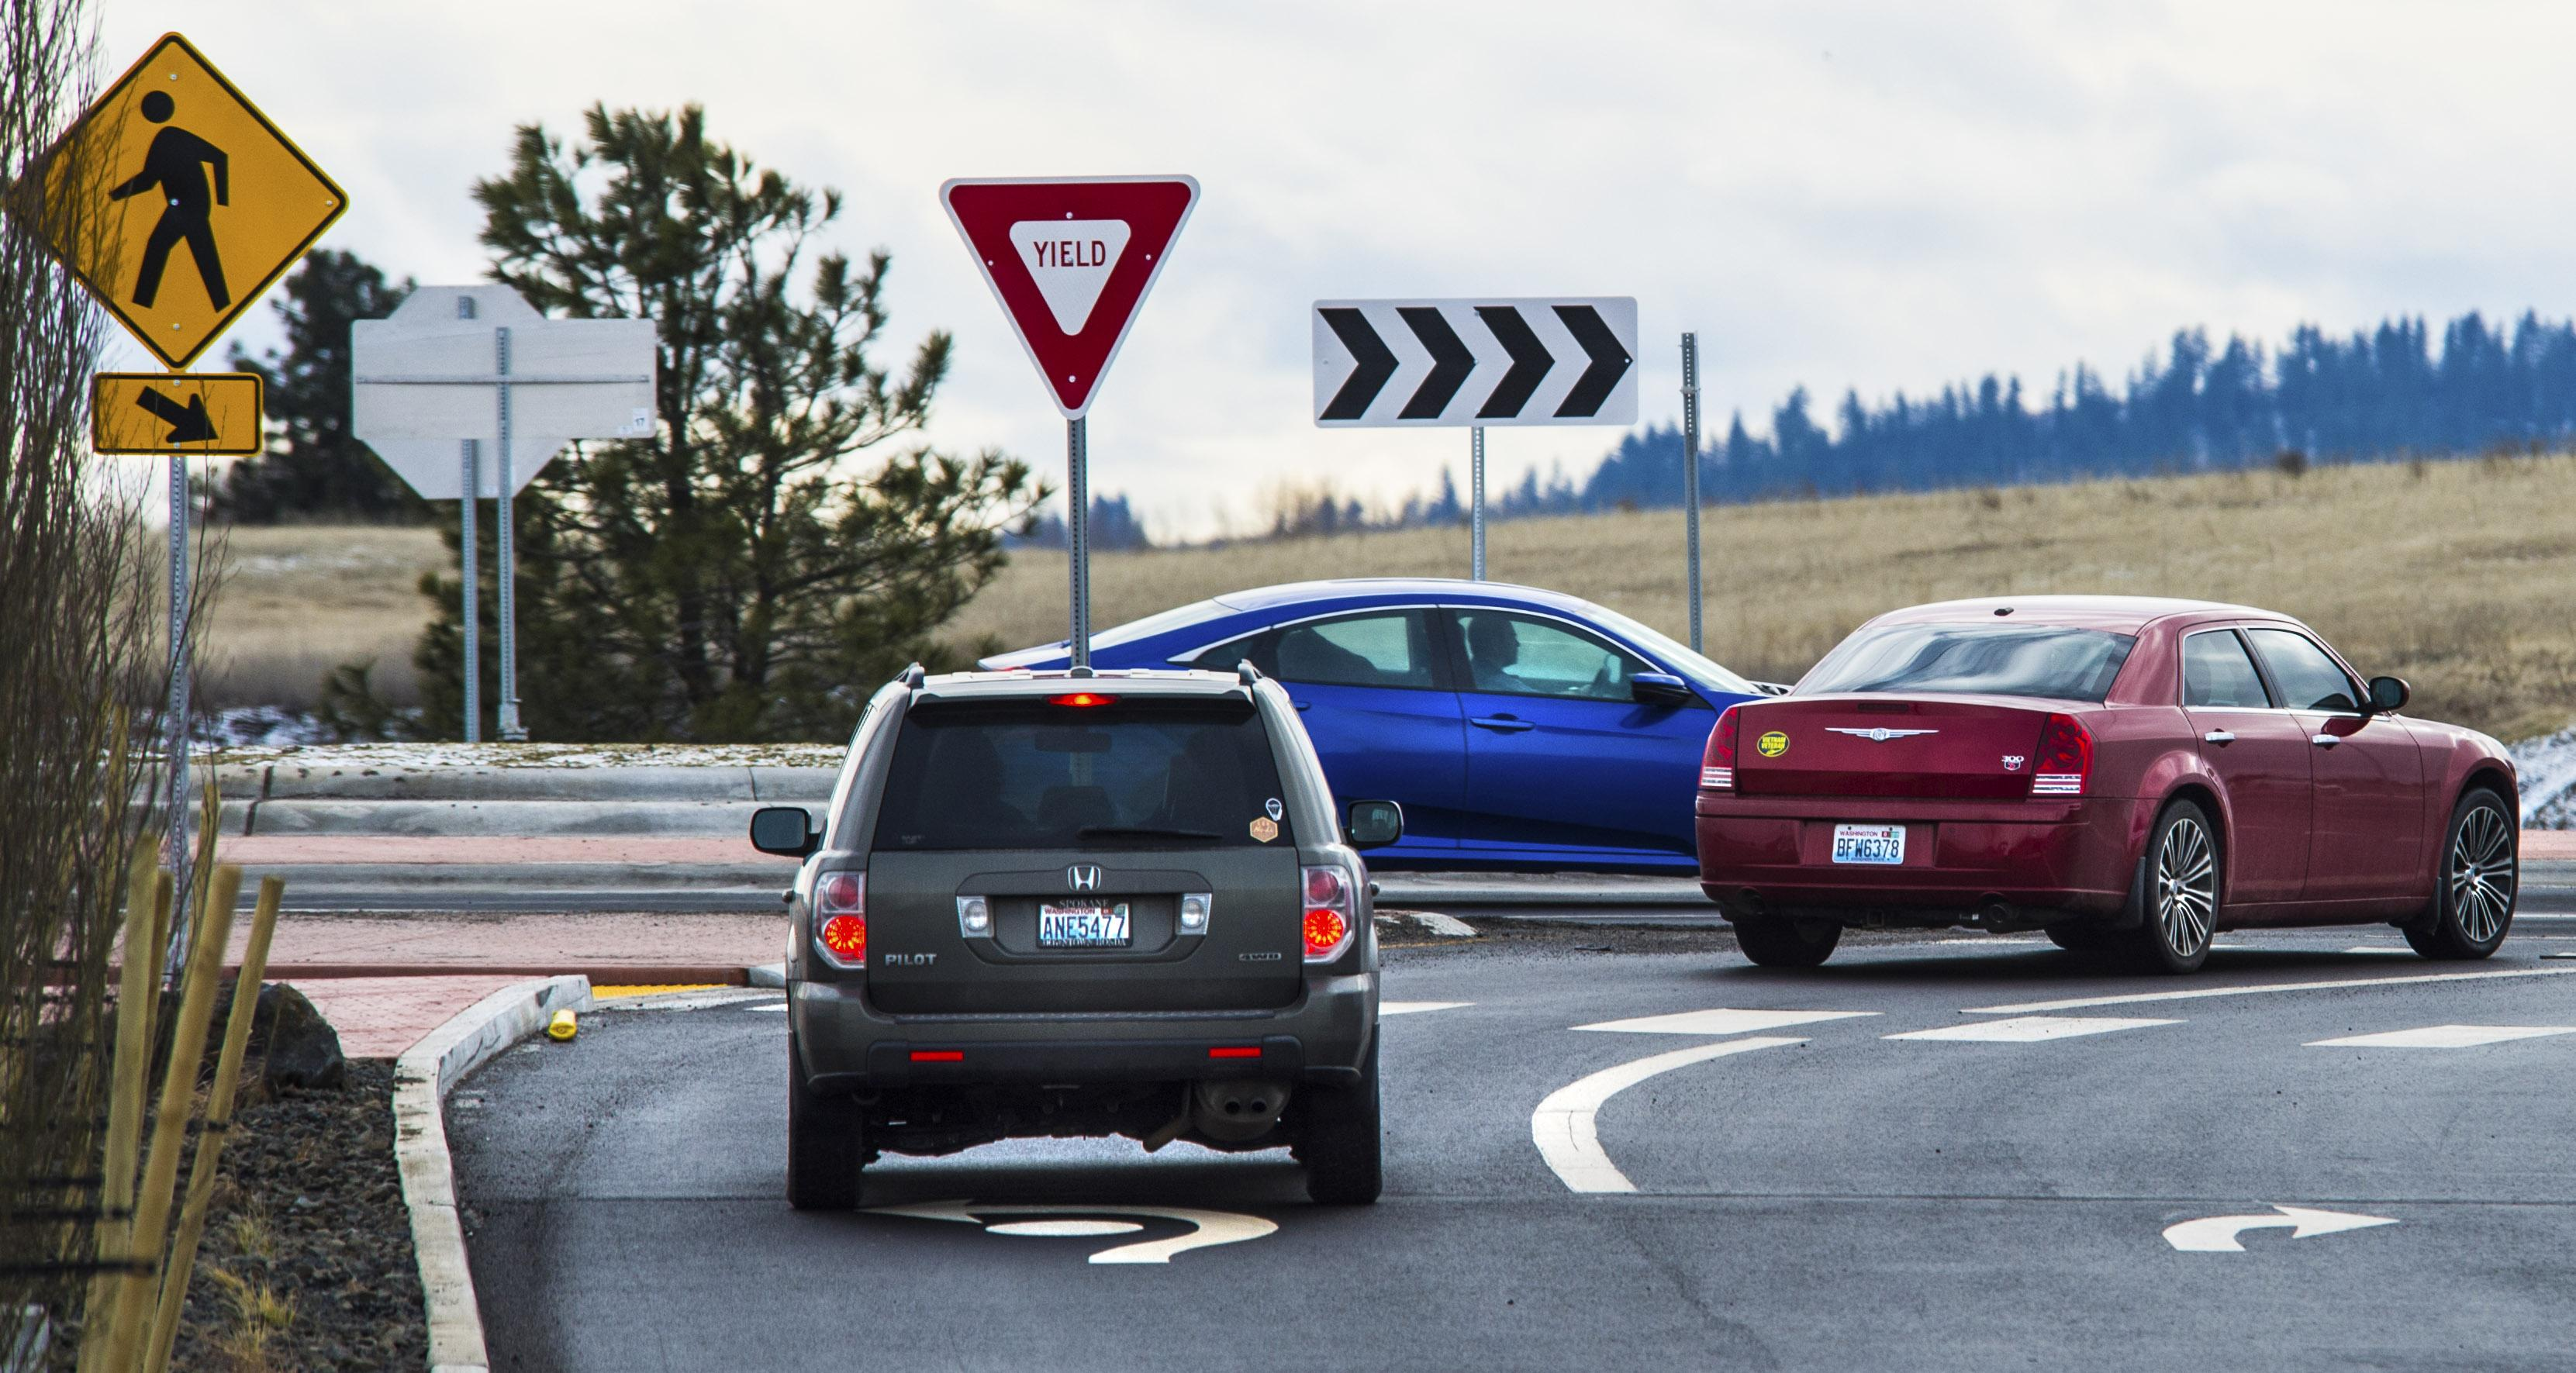 A pair of cars wait to enter the roundabout after leaving the Spokane Tribe Casino on U.S Highway 2, Friday, Jan. 26, 2018, in Airway Heights, Wash. Dan Pelle/THE SPOKESMAN-REVIEW